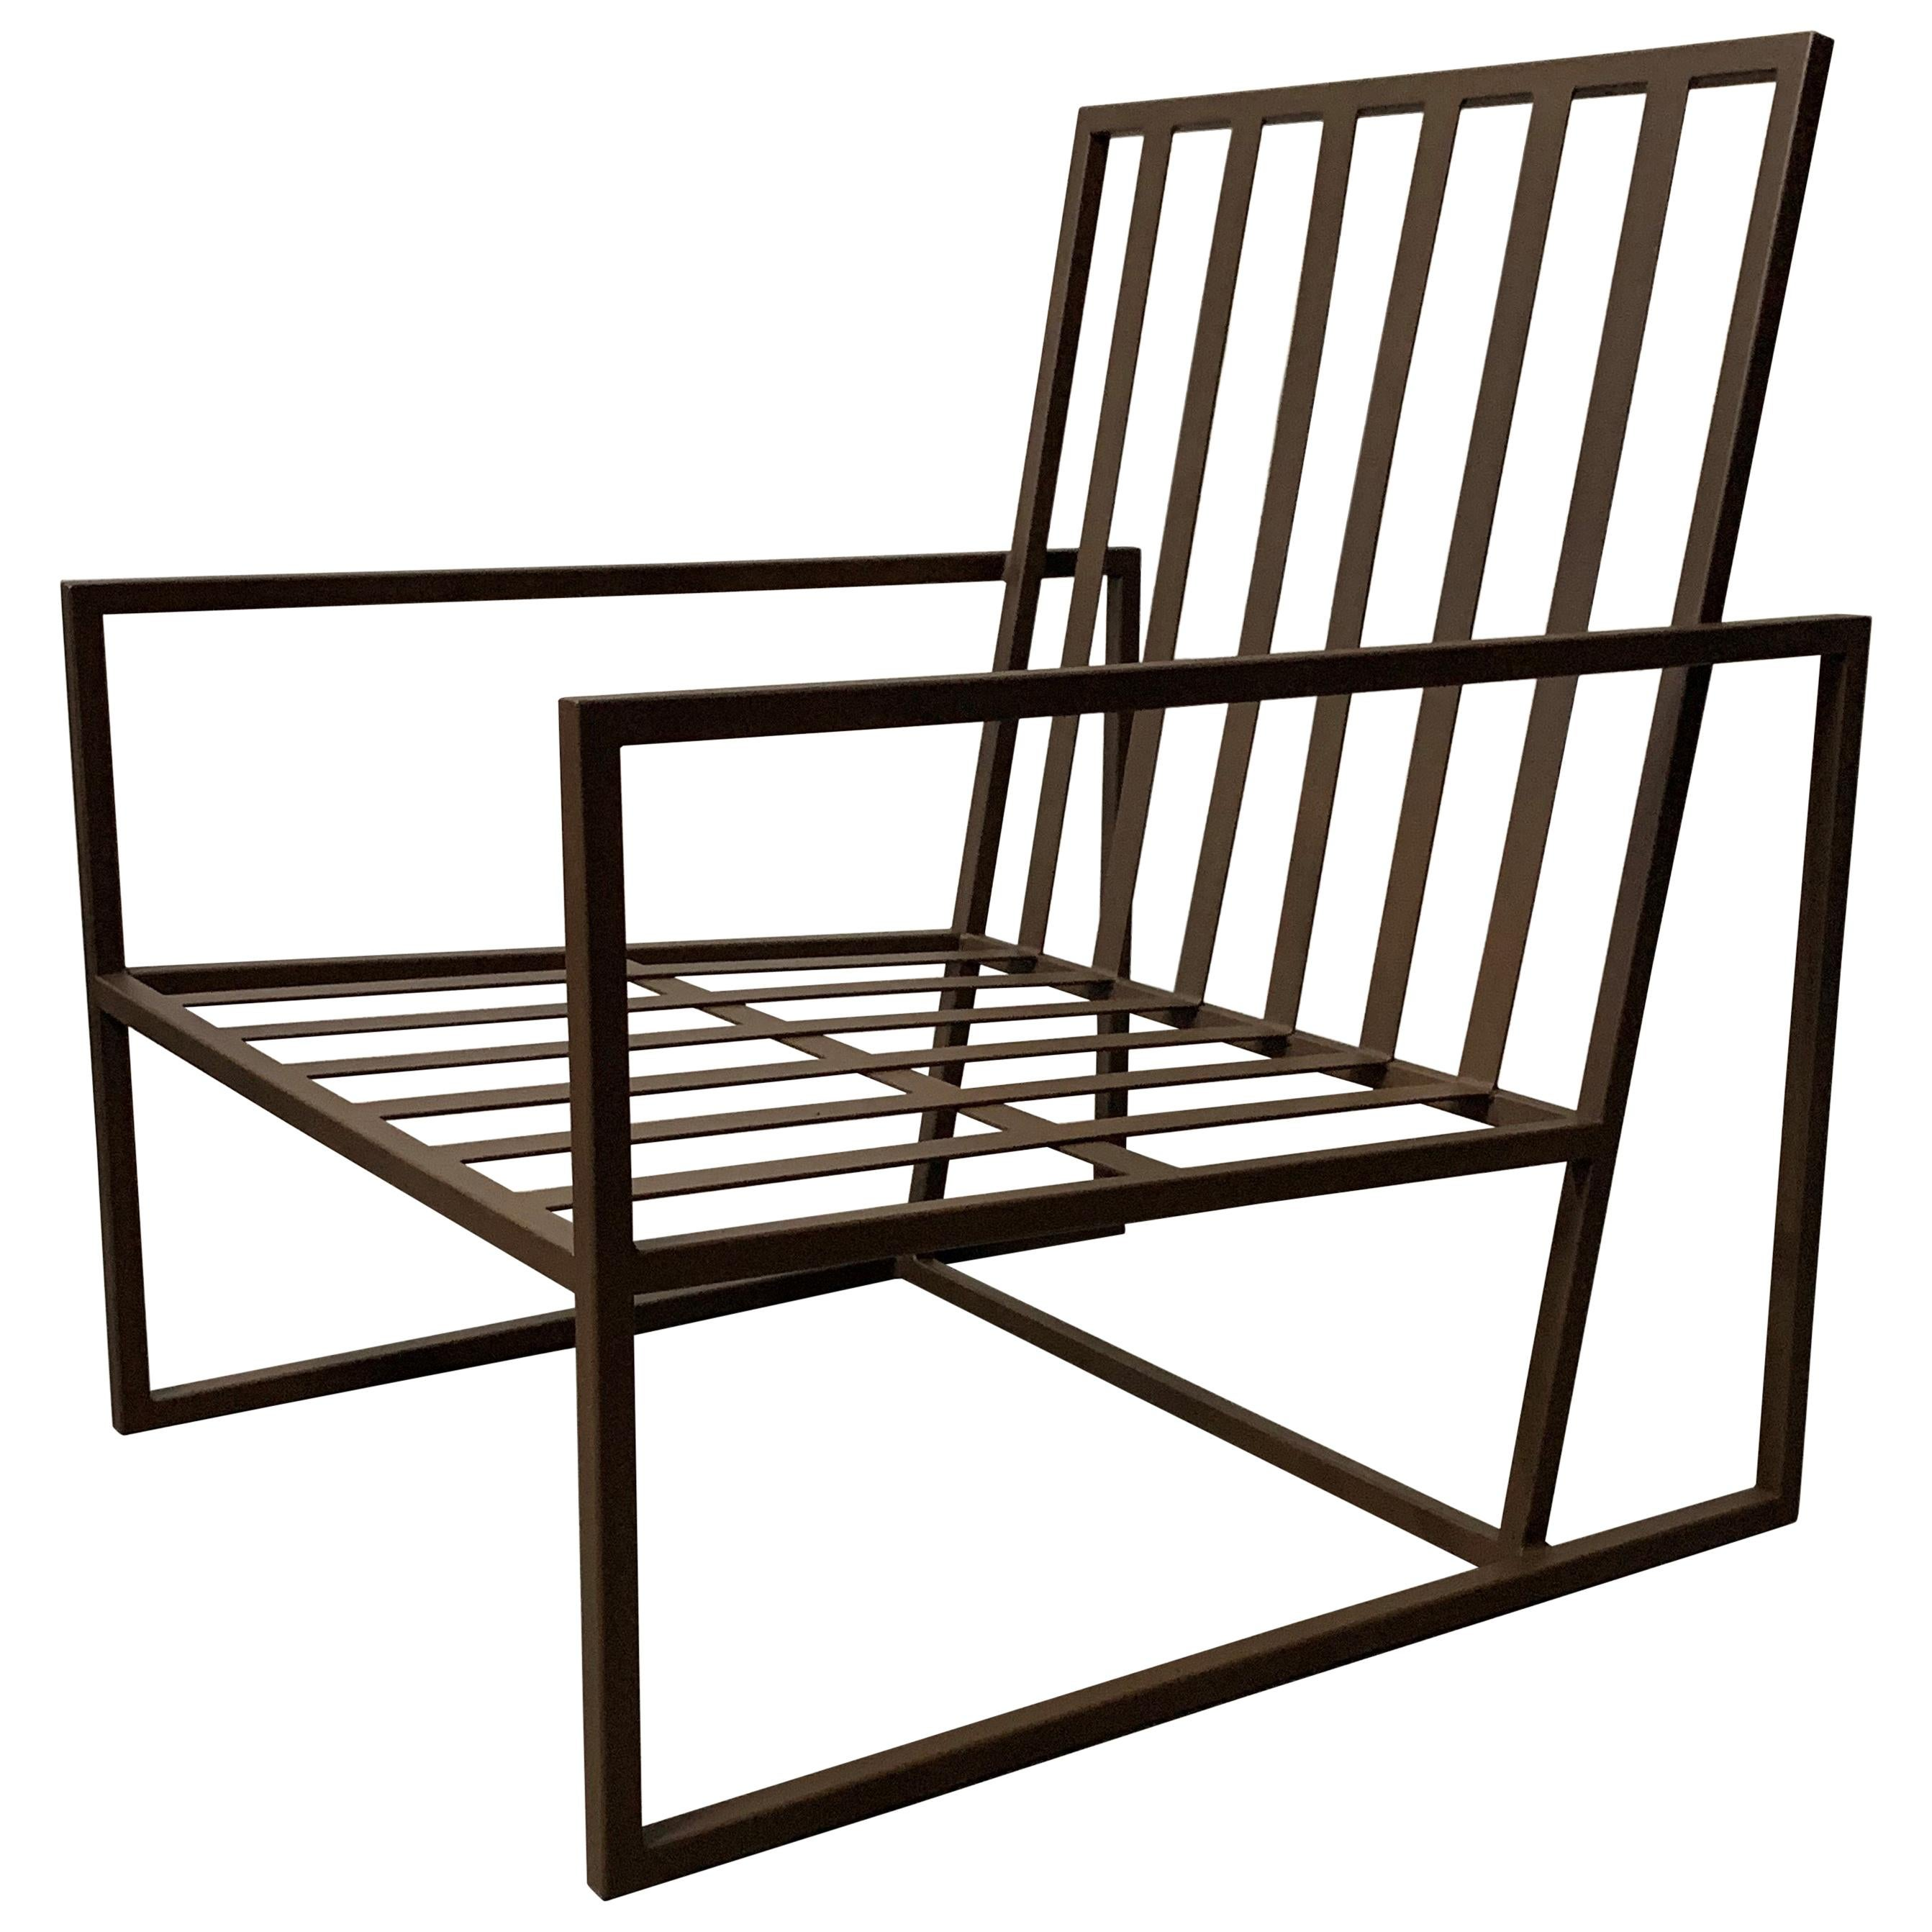 New Outdoor Armchair in Wrought Iron